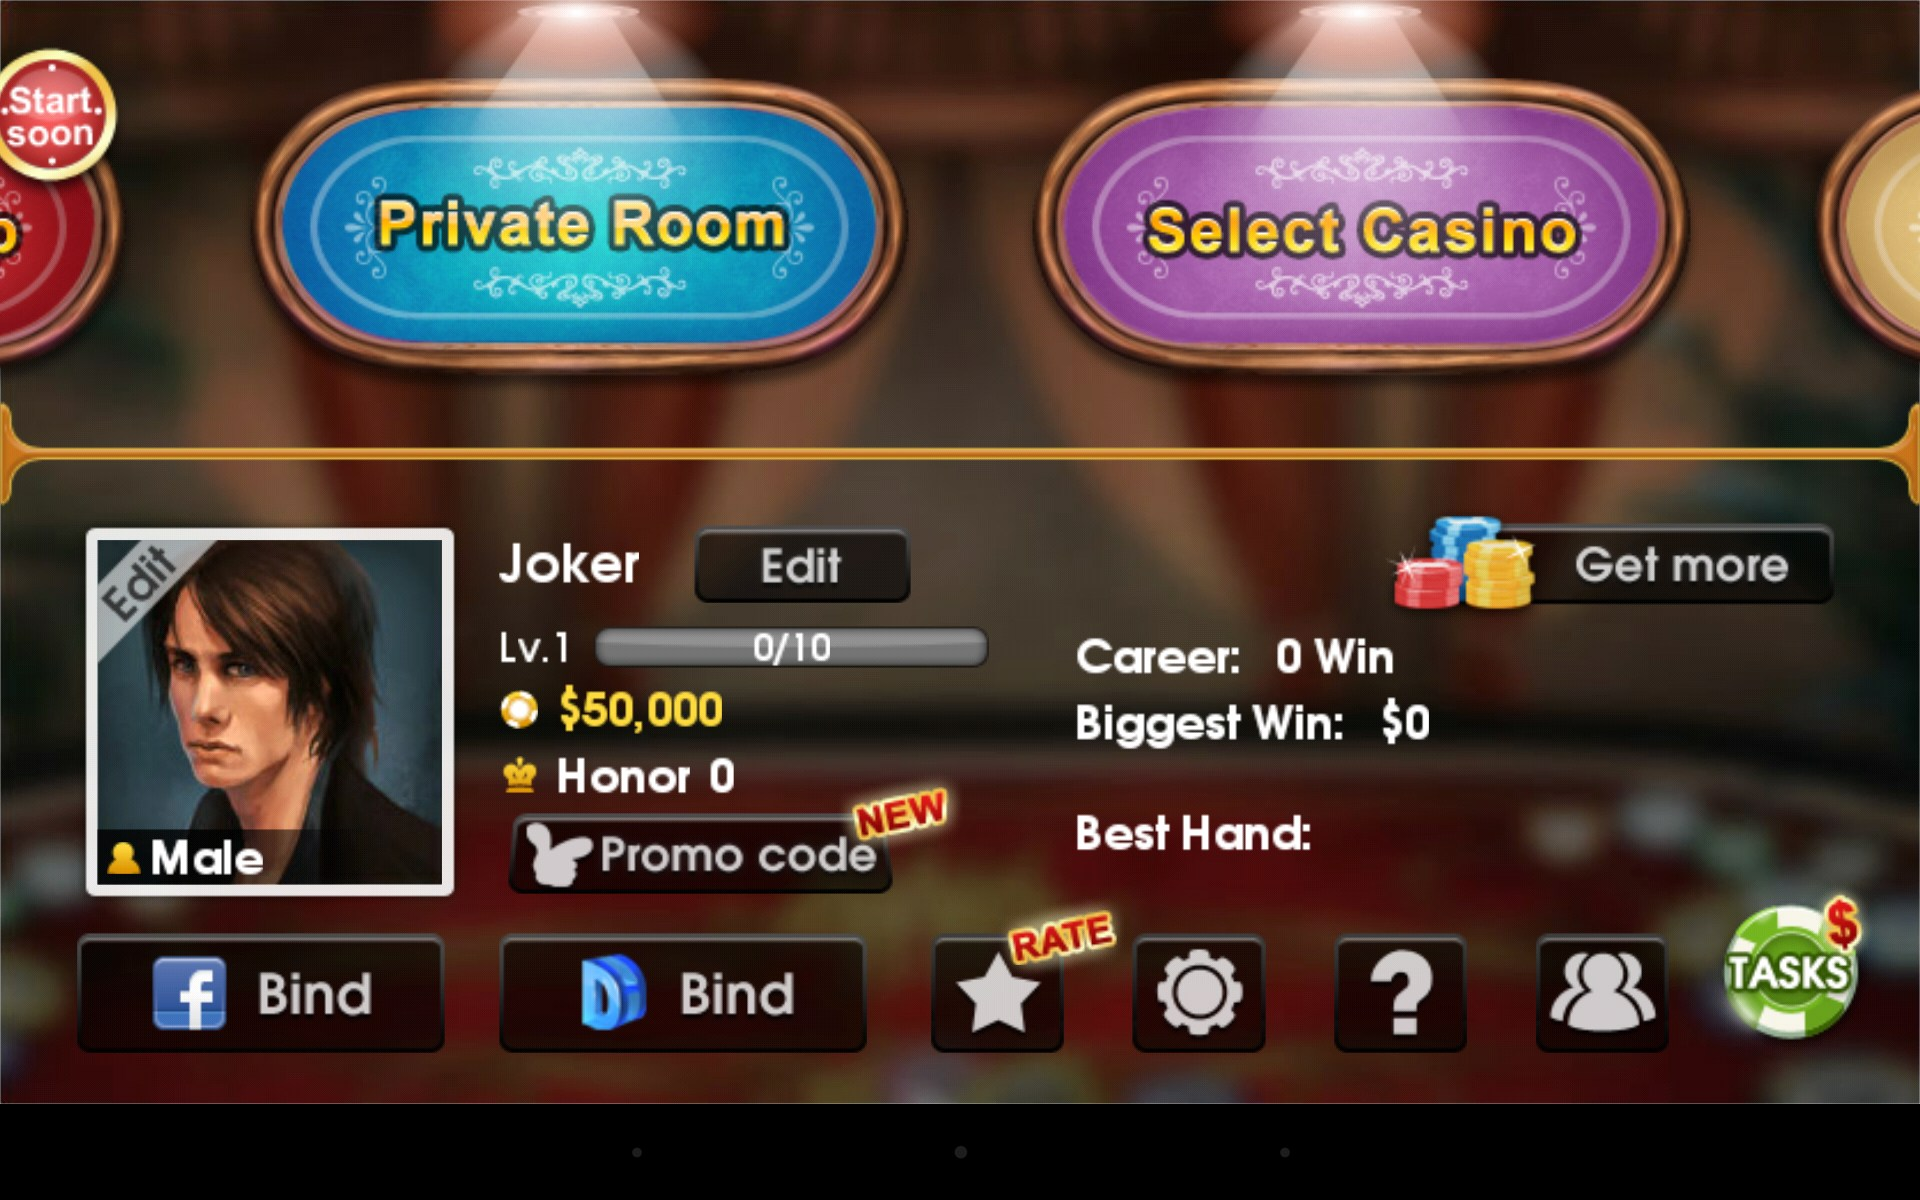 Dh texas poker hack cheats tool free unlimited chips